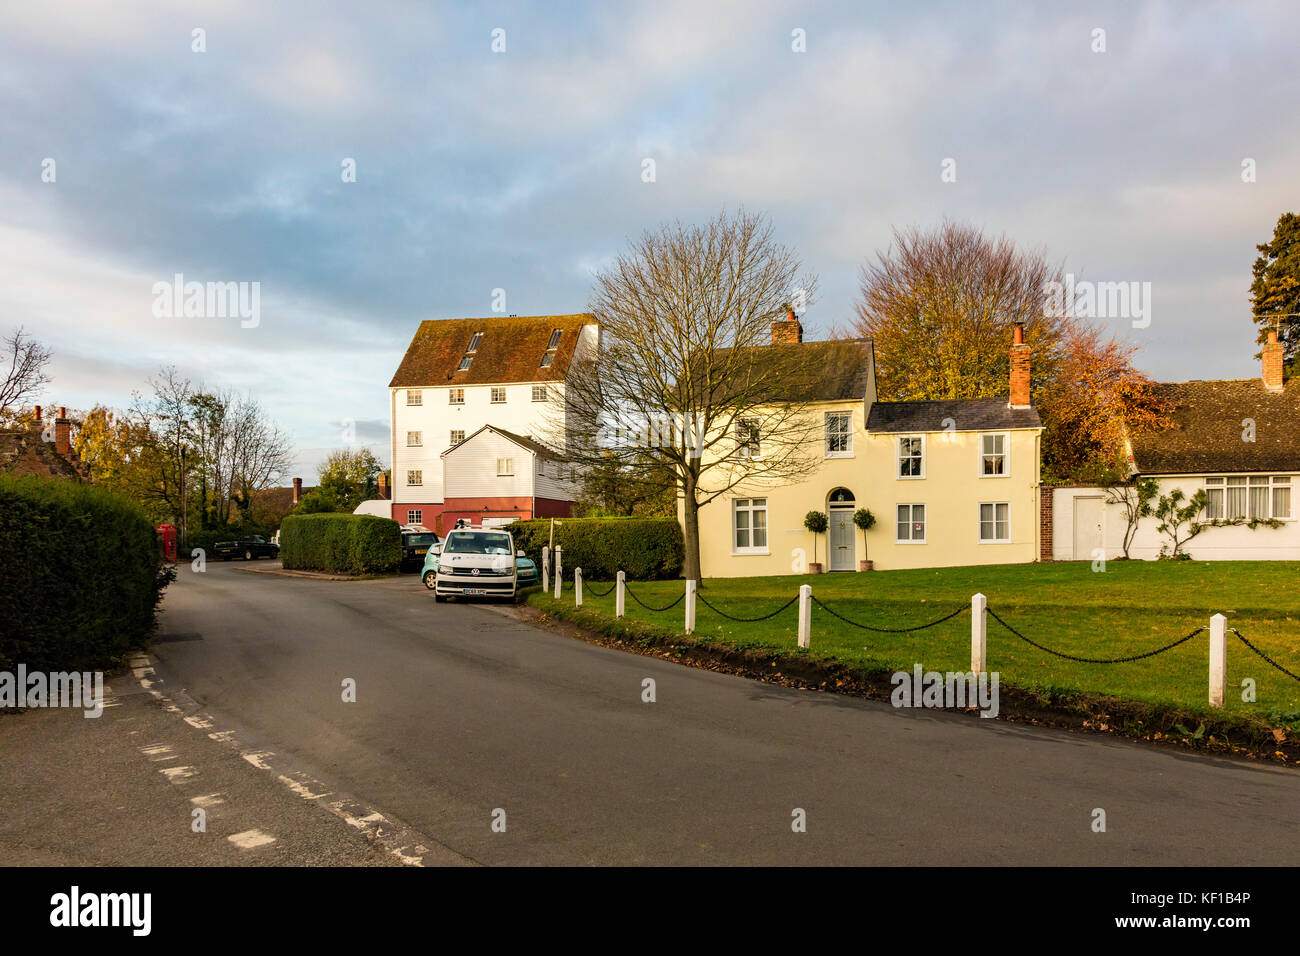 Wickhambreaux, Kent. 25th Oct, 2017. UK Weather. The early morning sunrise lights up the buildings in the pretty - Stock Image